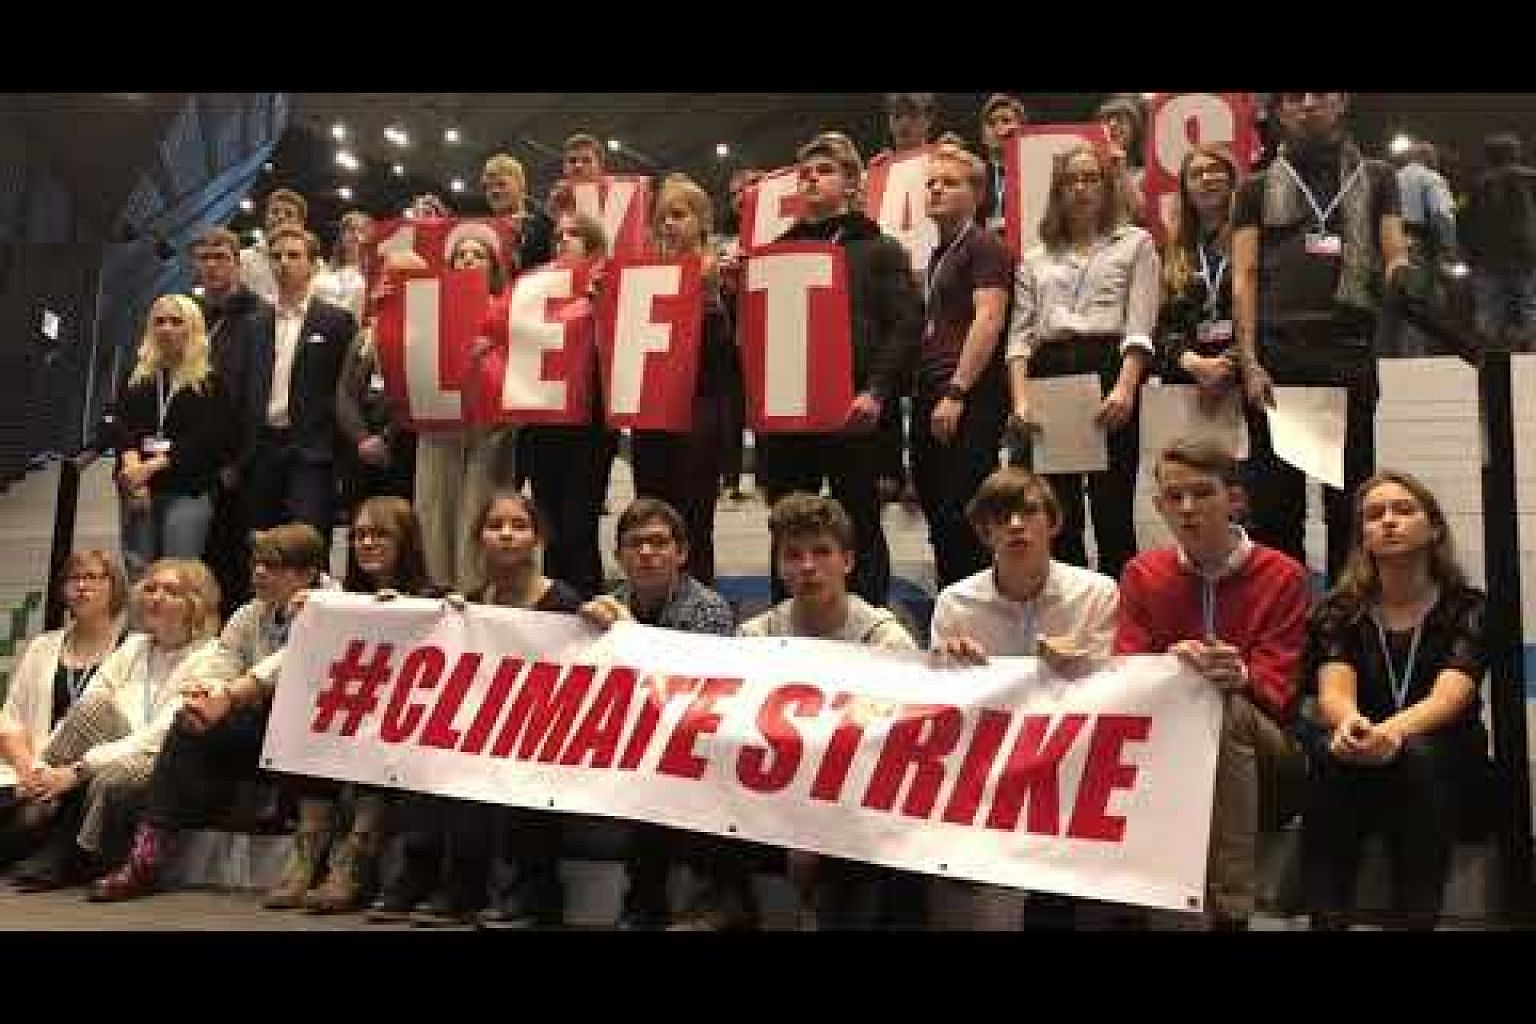 Climate strike at COP24 by teenagers